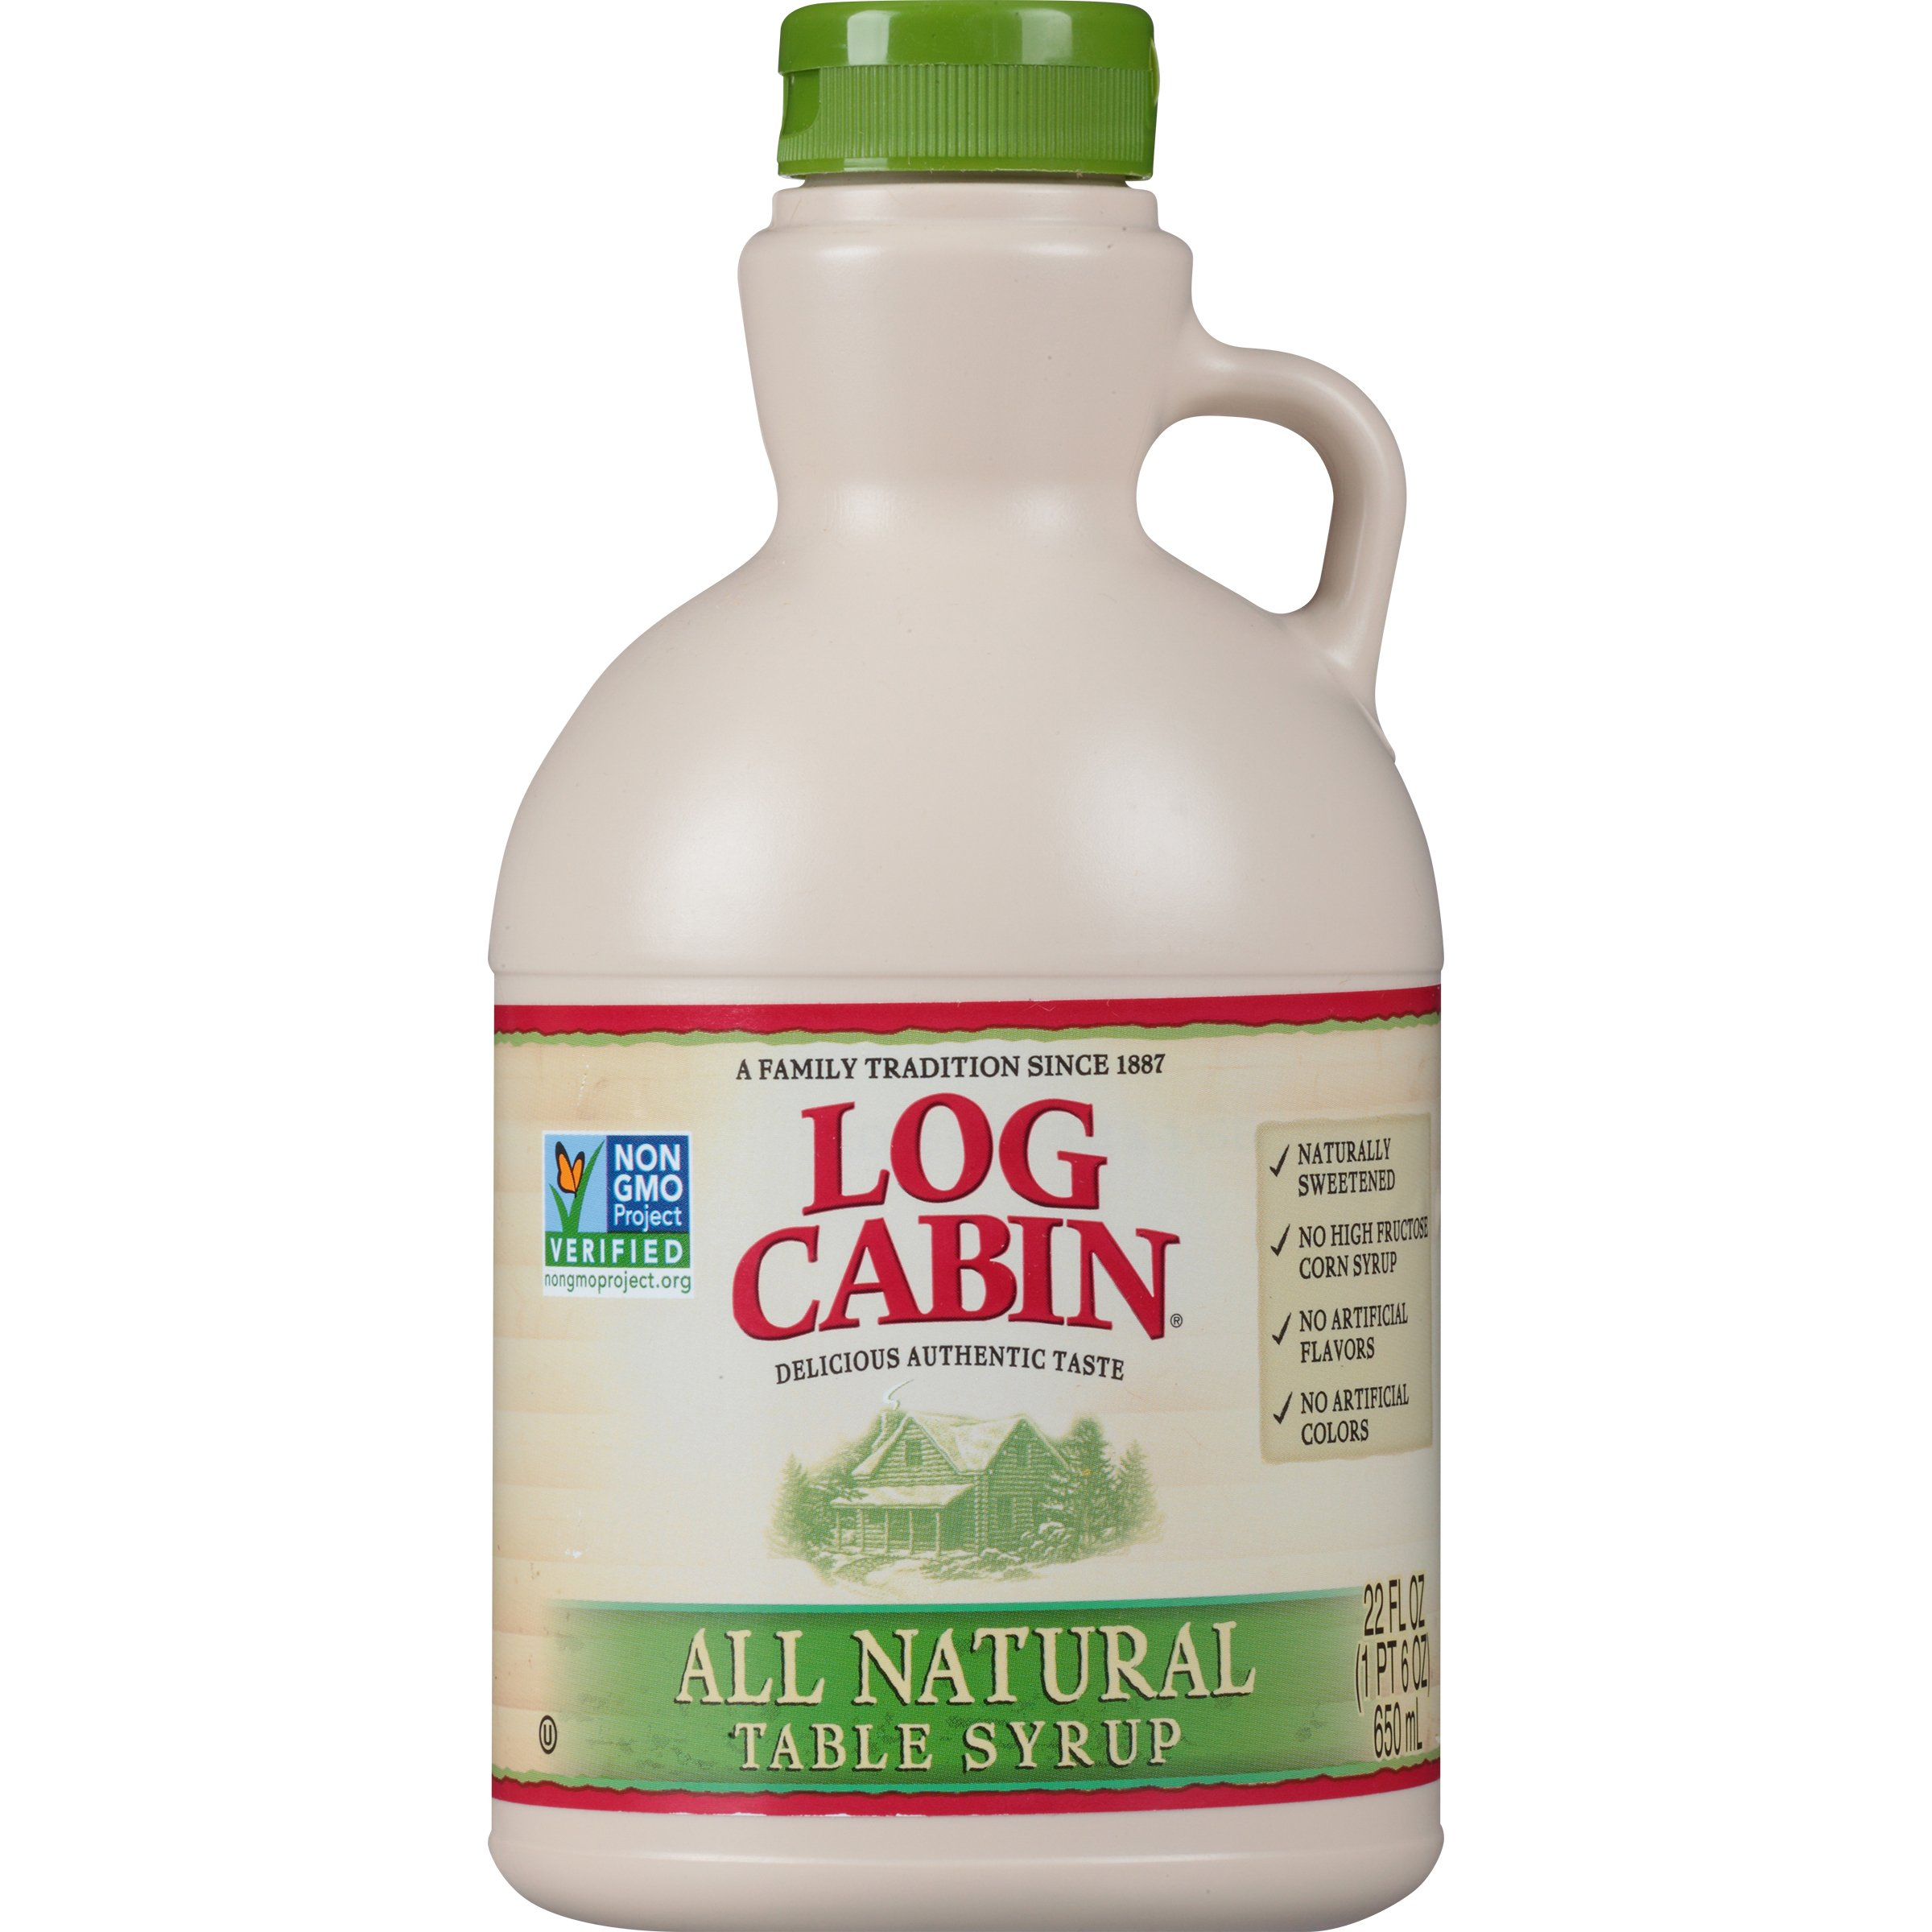 Log Cabin Table Syrup, All Natural, 22 oz